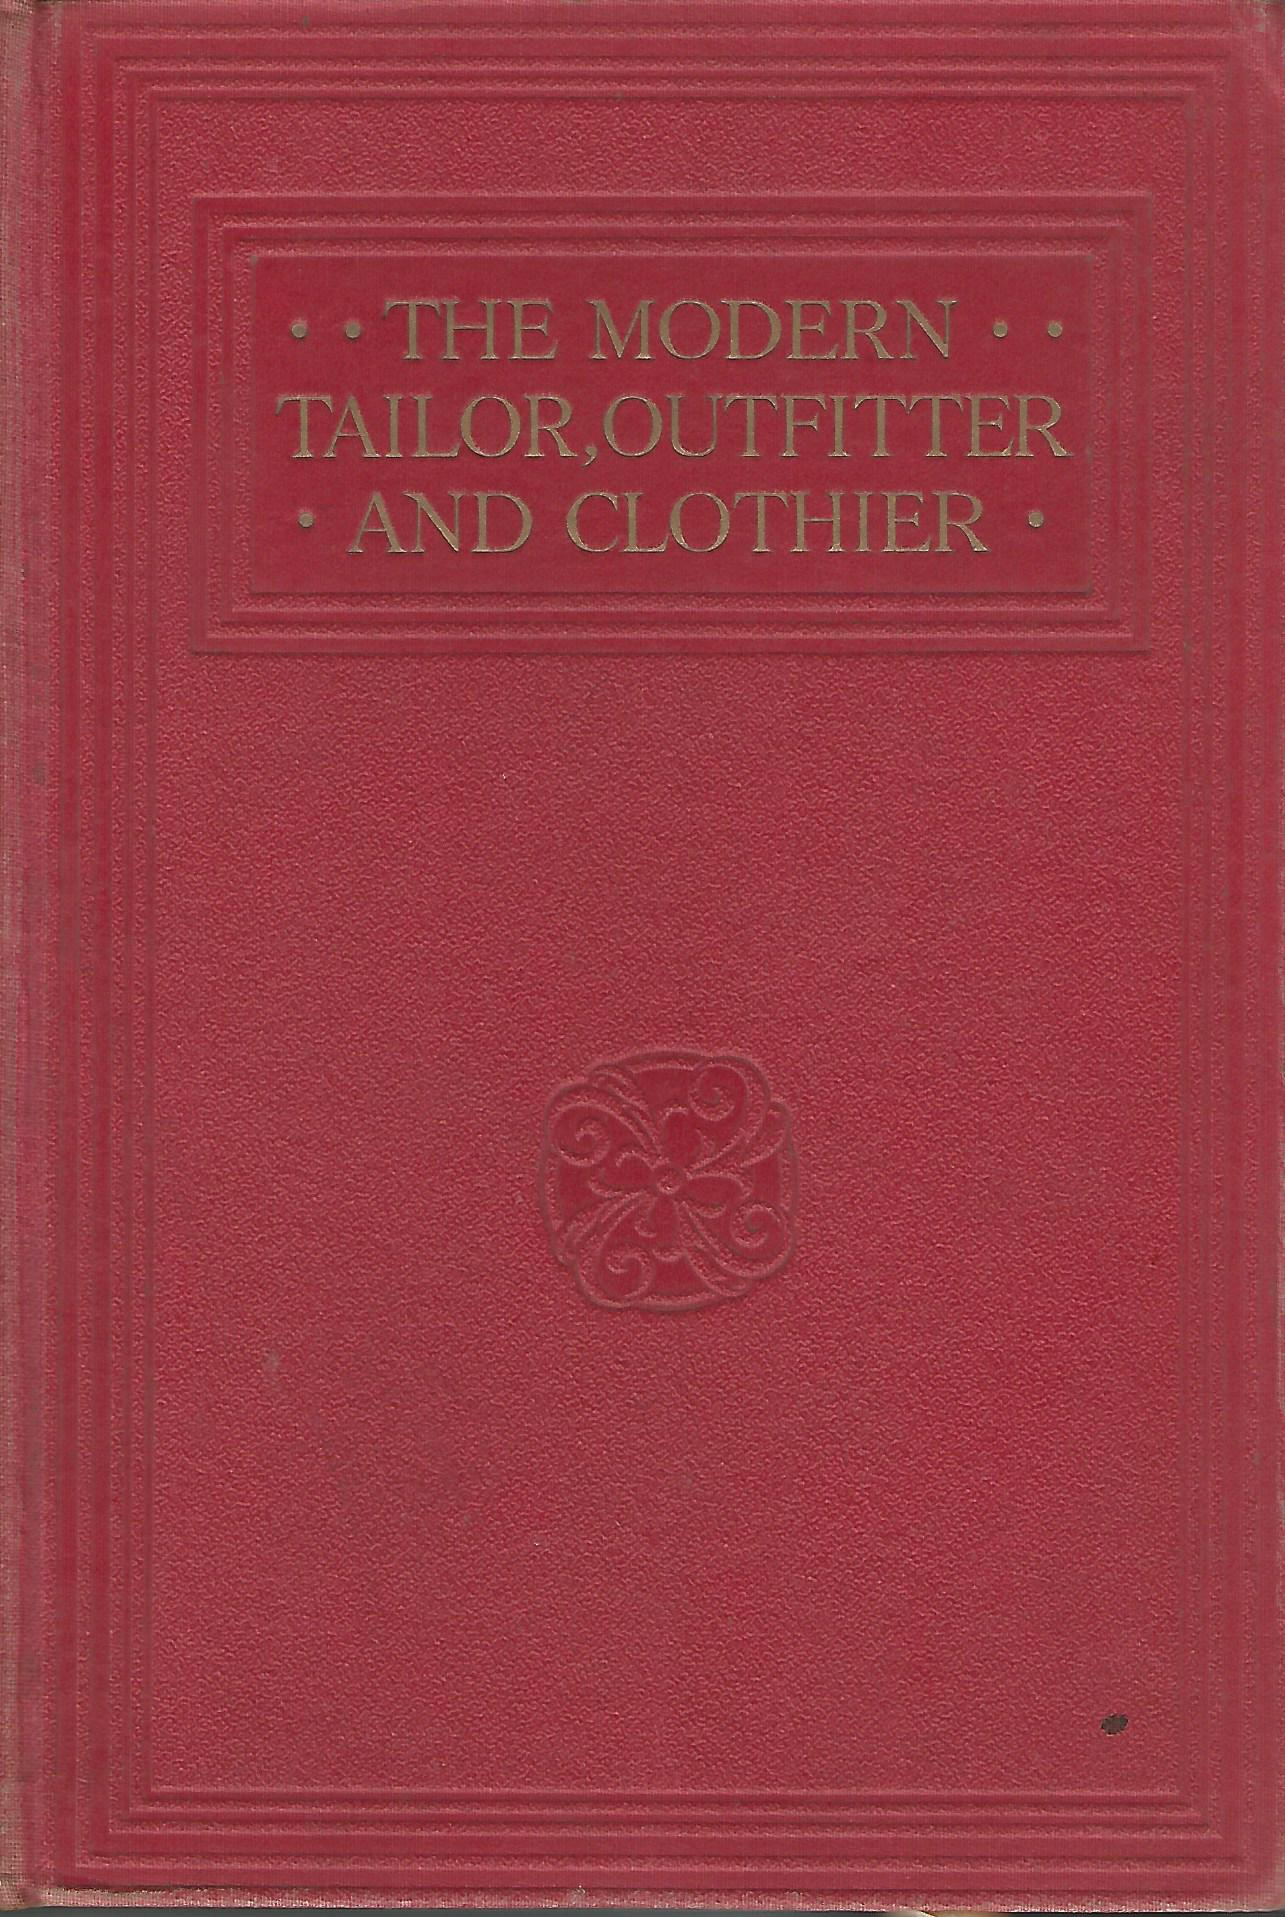 Image for The Modern Tailor, Outfitter and Clother.